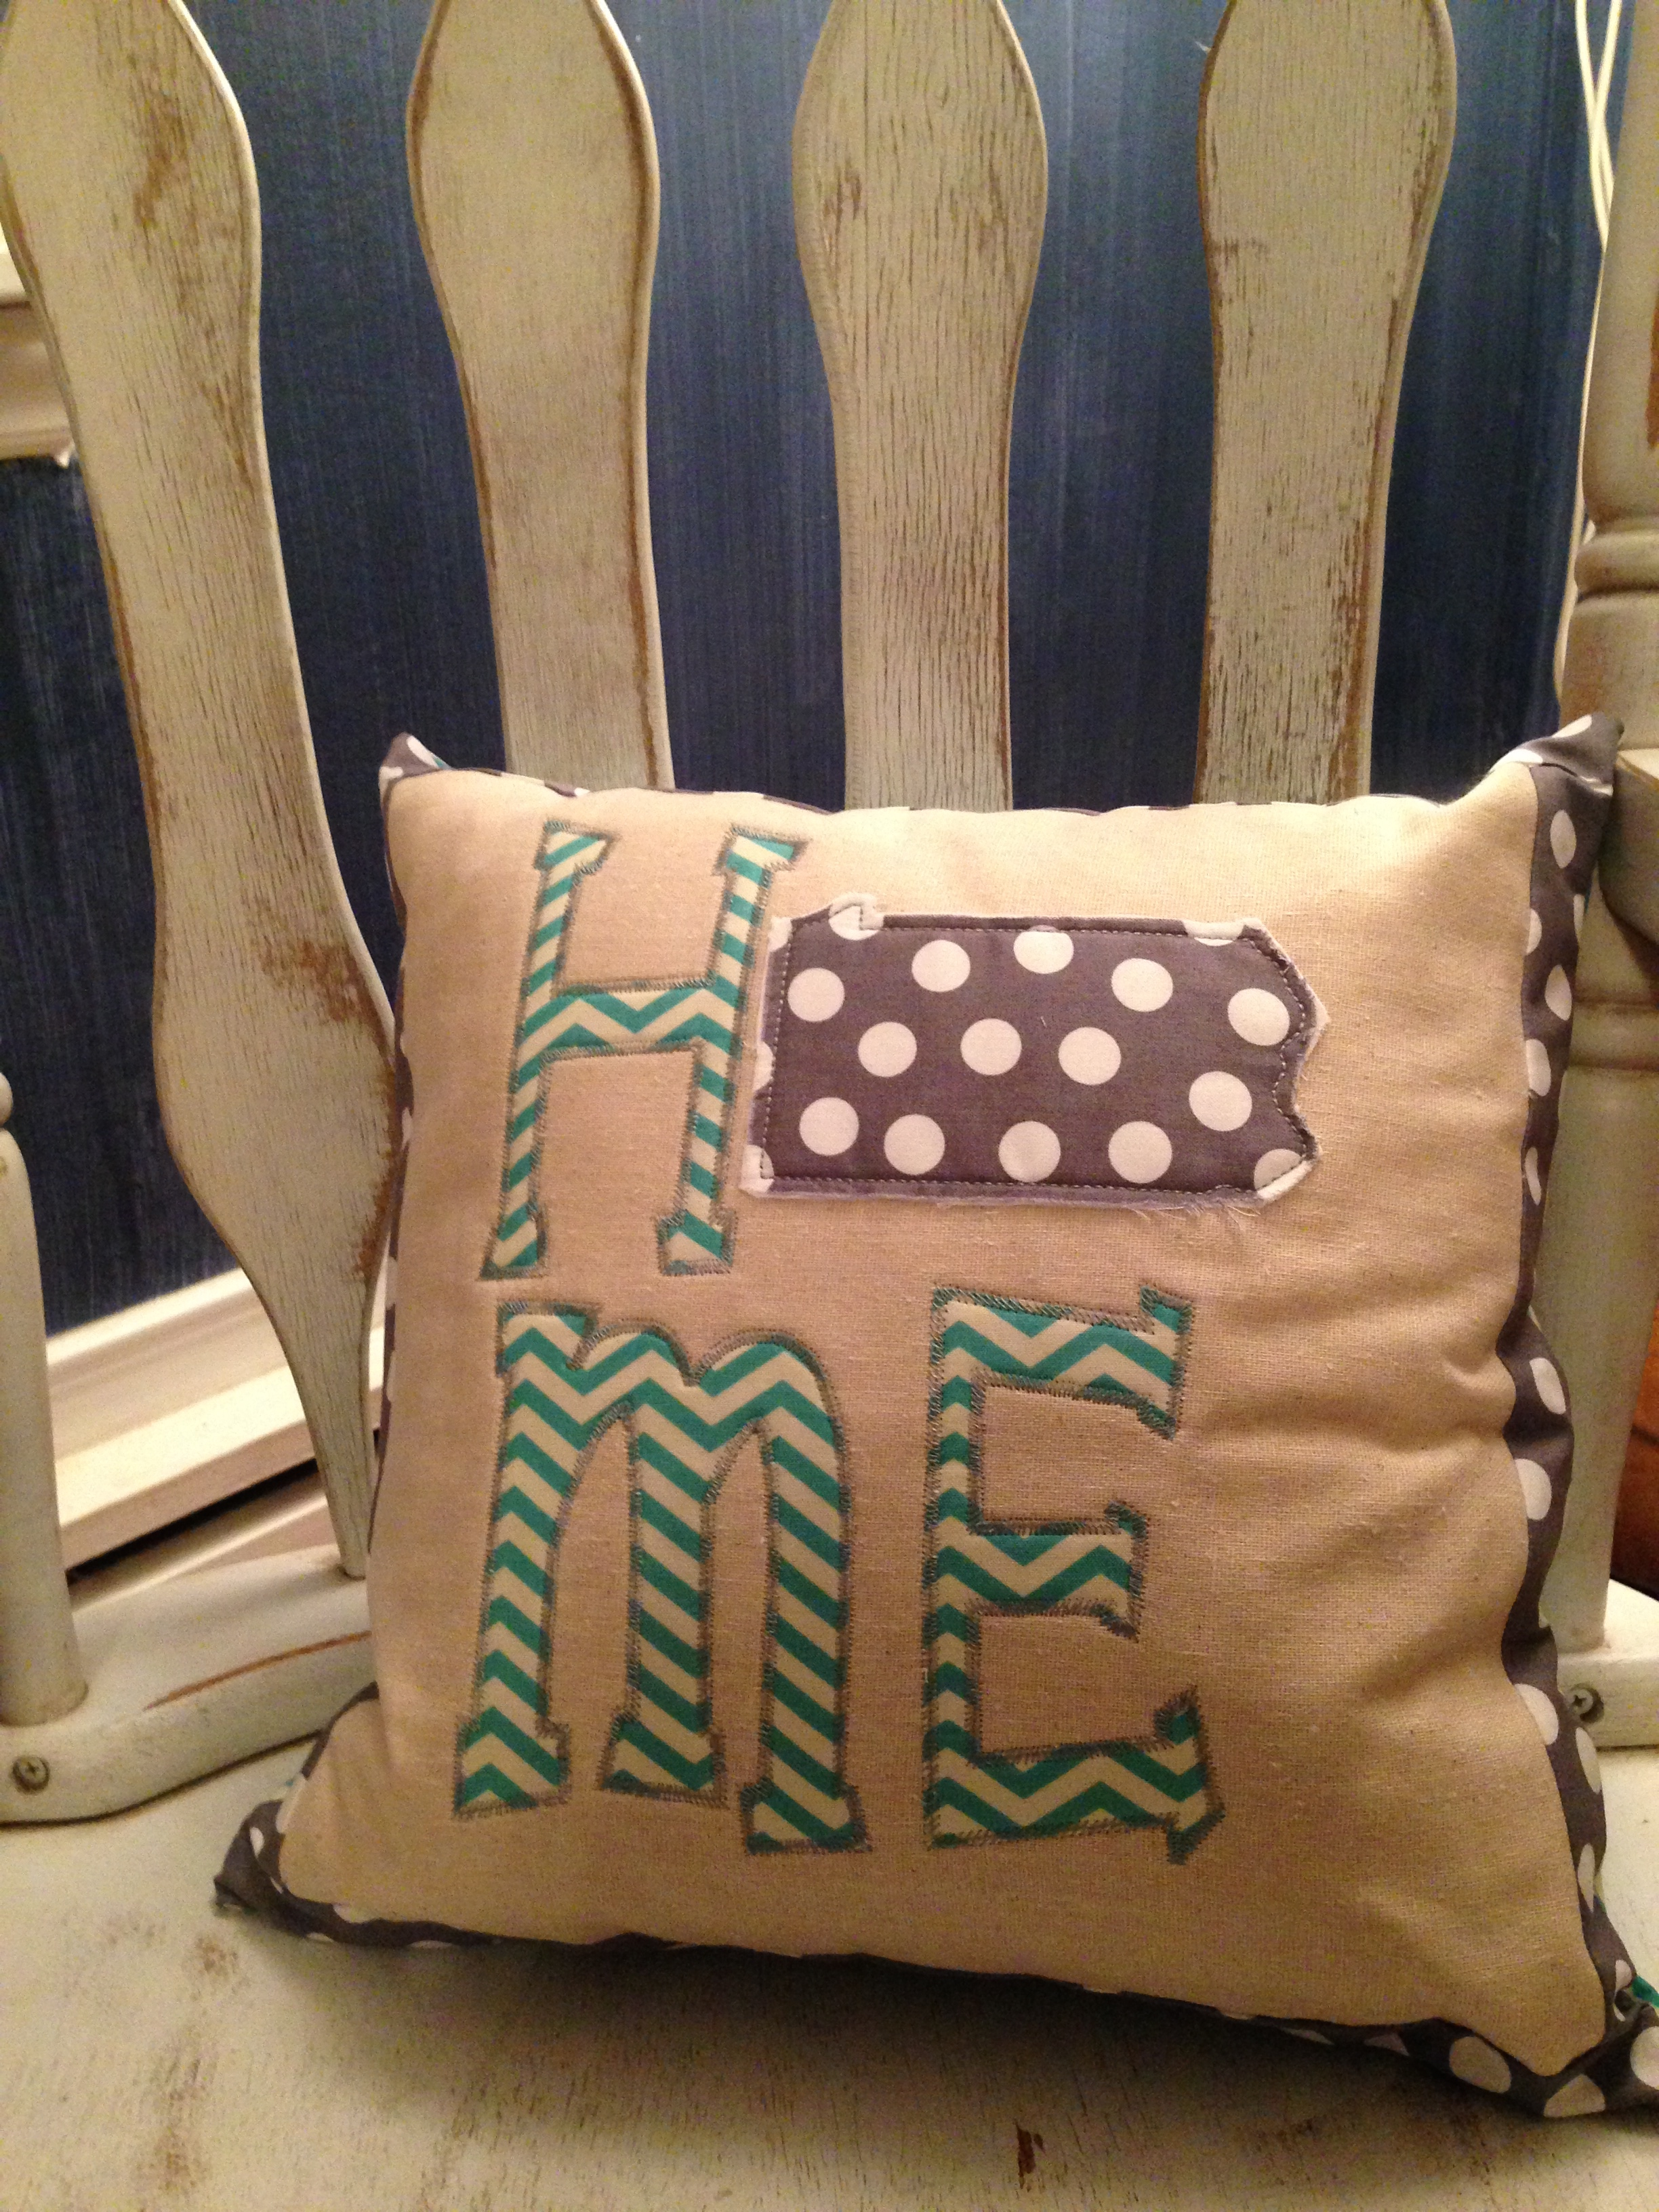 What's that? One adorable hand made pillow isn't enough? You want ANOTHER one? Well, all right then, here you go.